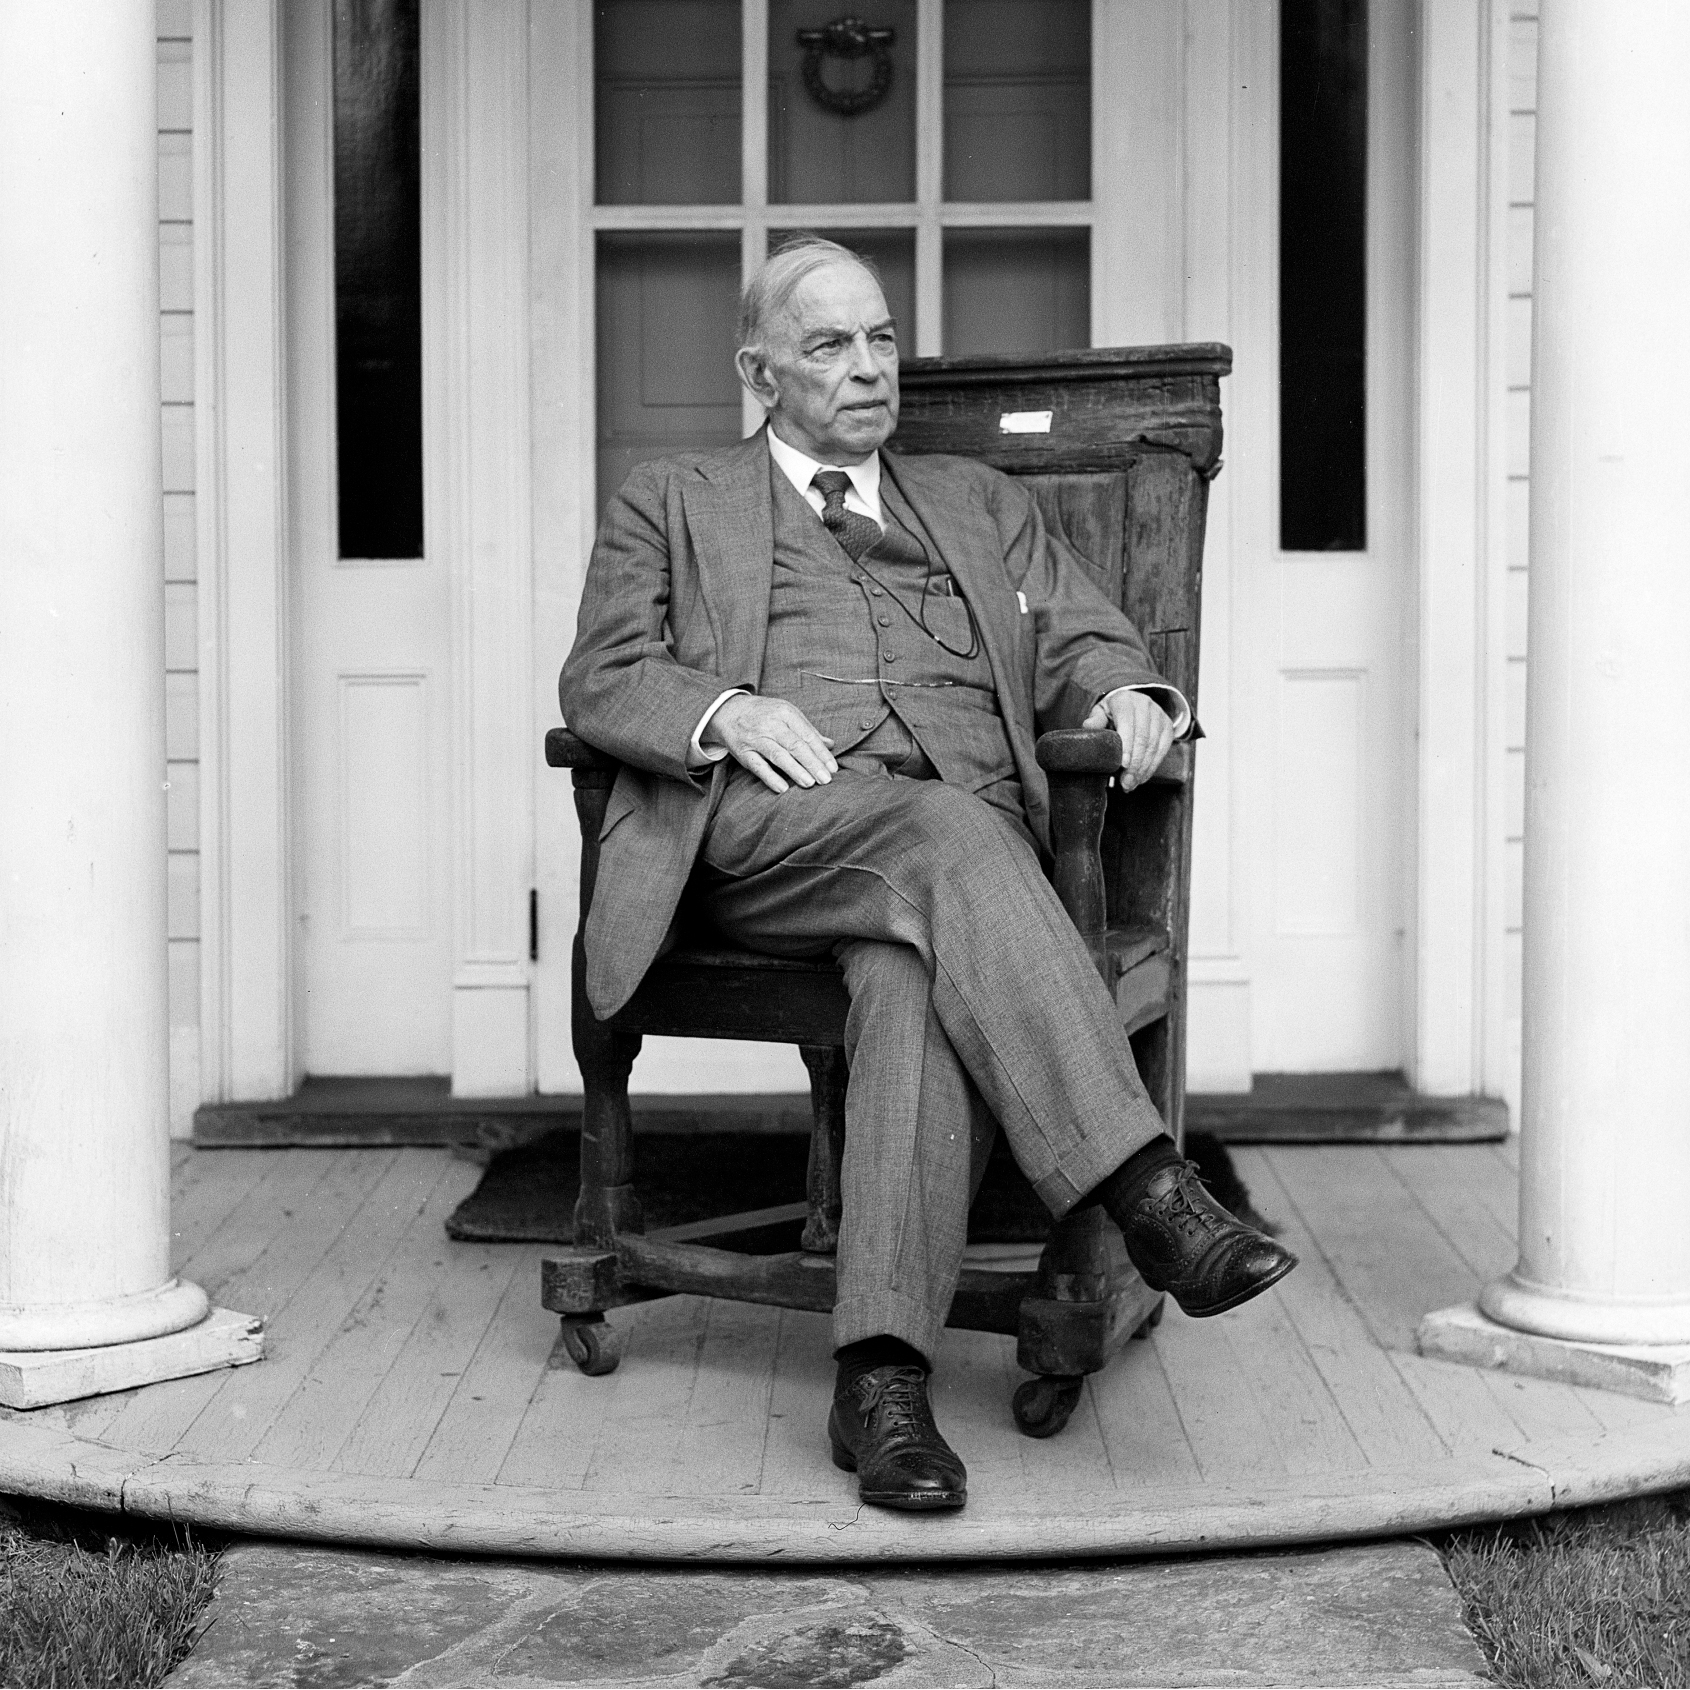 william lyon mackenzie king William lyon mackenzie king, prime minister of canada 1921–26, 1926–30 and 1935–48 (born 17 december 1874 in berlin [kitchener], on died 22 july 1950 in kingsmere, qc [near ottawa, on]) leader of the liberal party 1919-48, and prime minister for almost 22 of those years, king was the dominant political figure in.